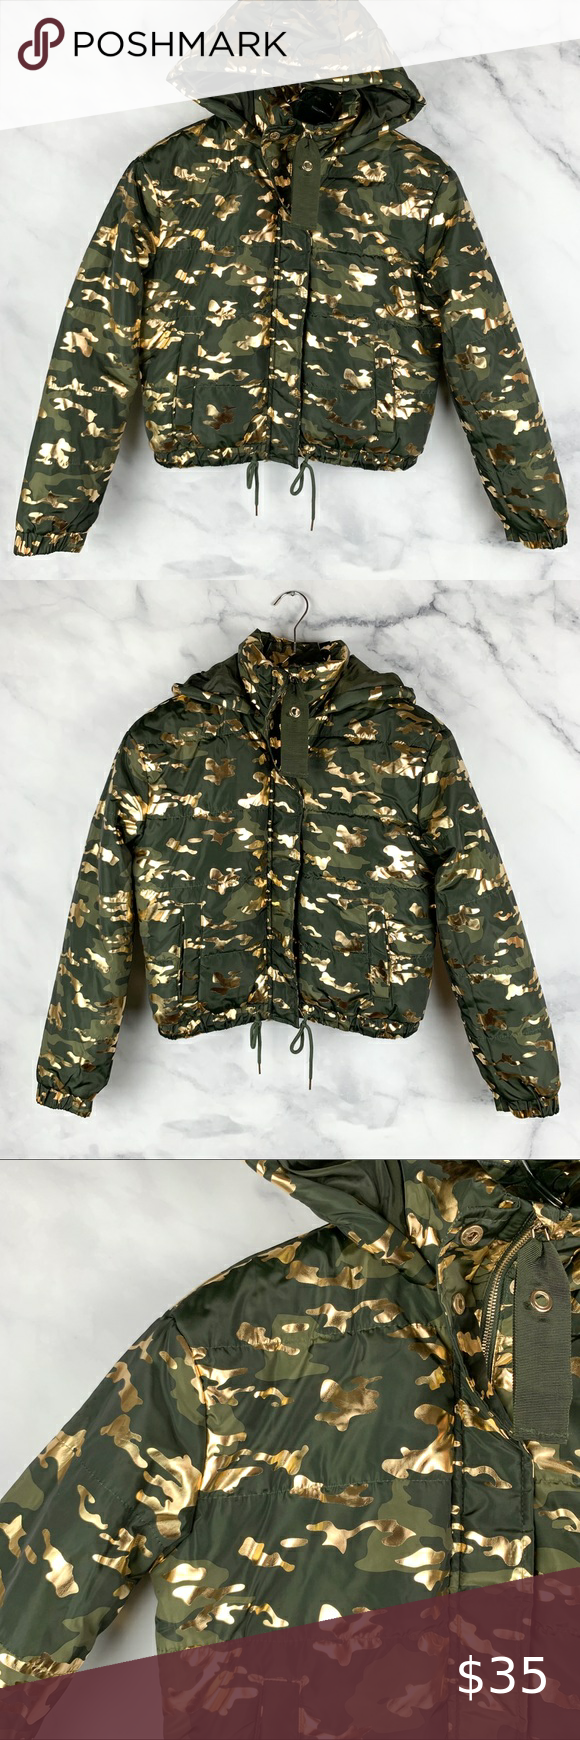 Nwt Ashley Outerwear Gold Camo Puffer Jacket Boho In 2021 Camo Puffer Jacket North Face Puffer Jacket Bodycon Dress With Sleeves [ 1740 x 580 Pixel ]